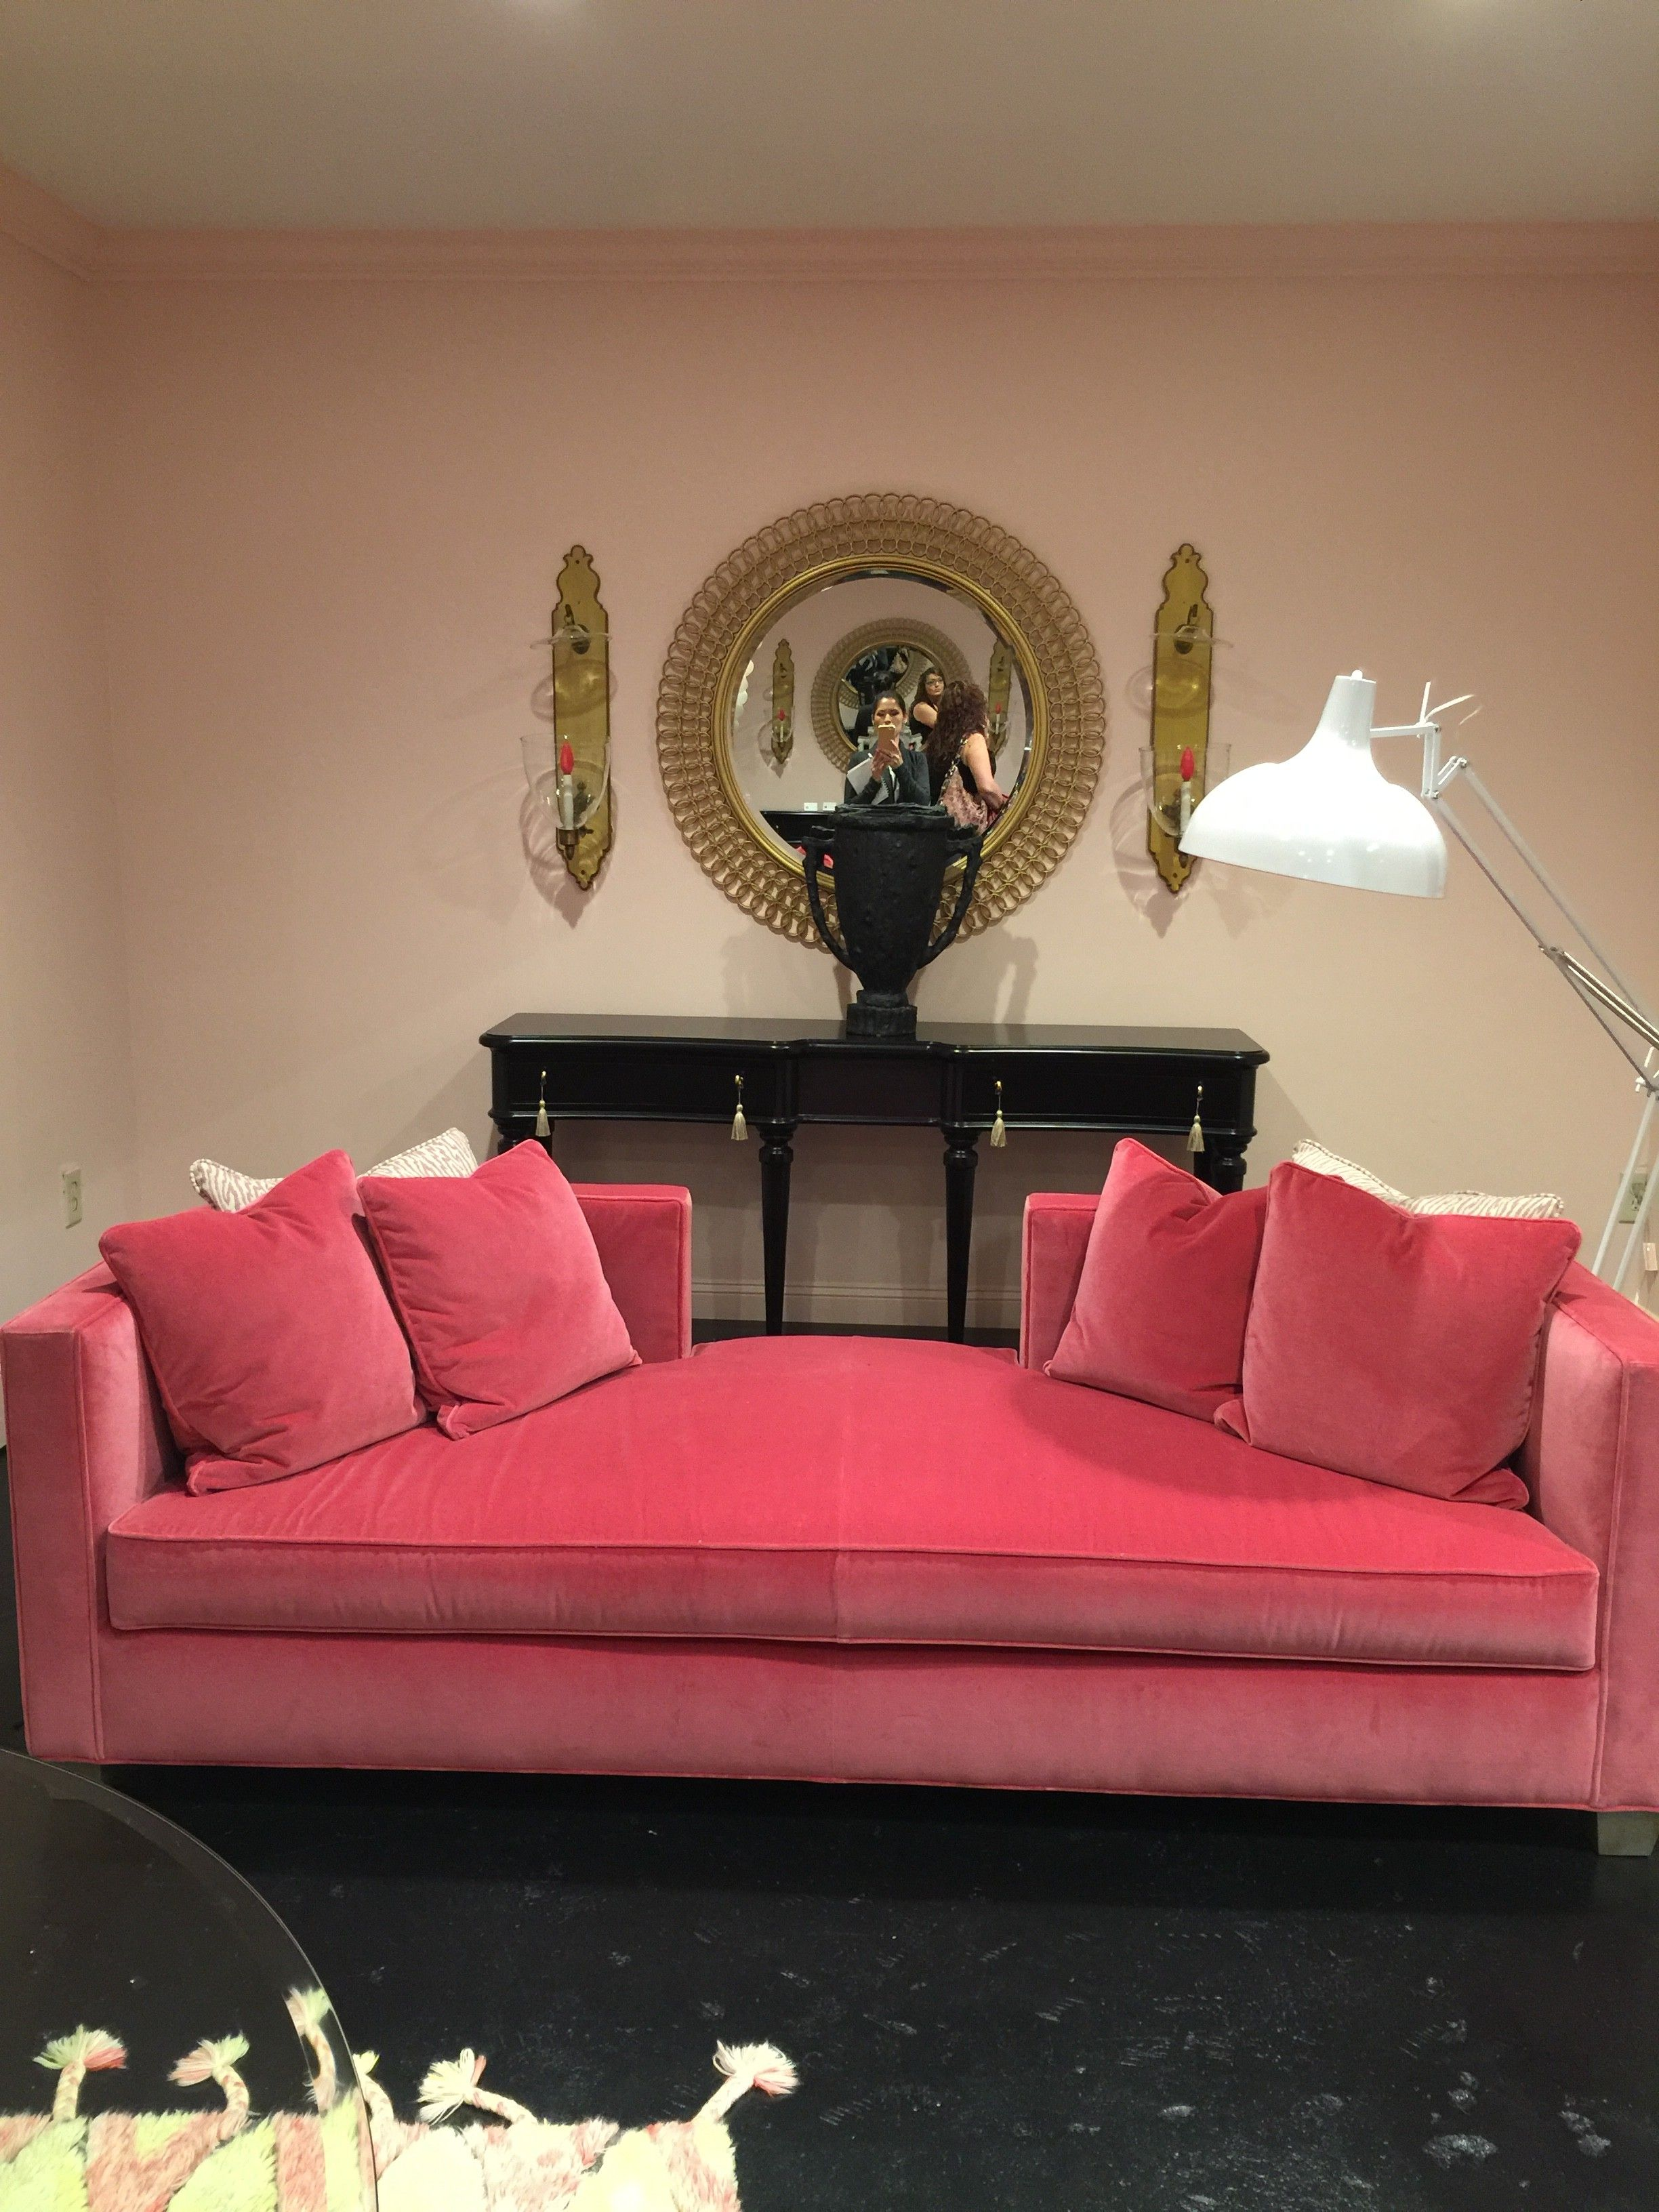 Marvelous Living Room Design With Cynthia Rowley Furniture Christy Davis Interiors For